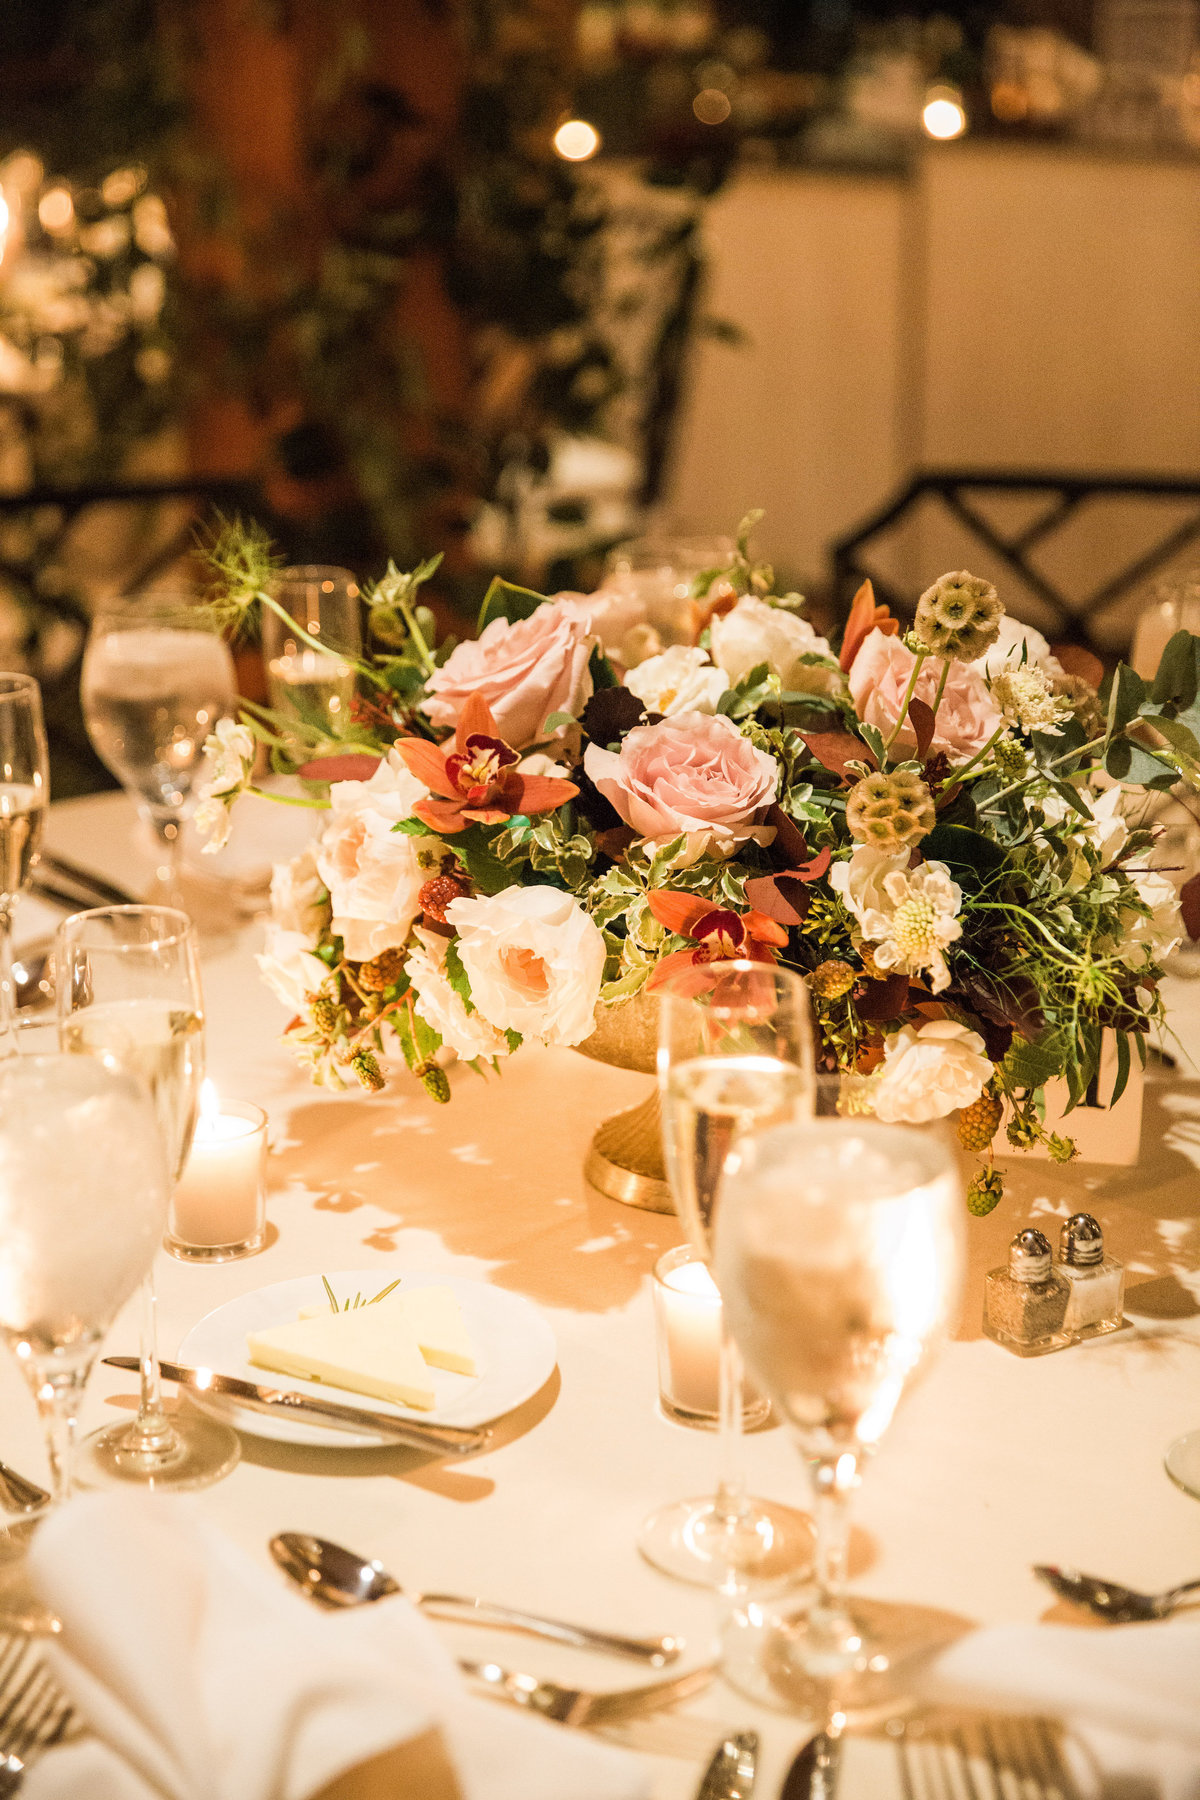 Winterthur wedding wilmington Centerpiece florist A styled Fete